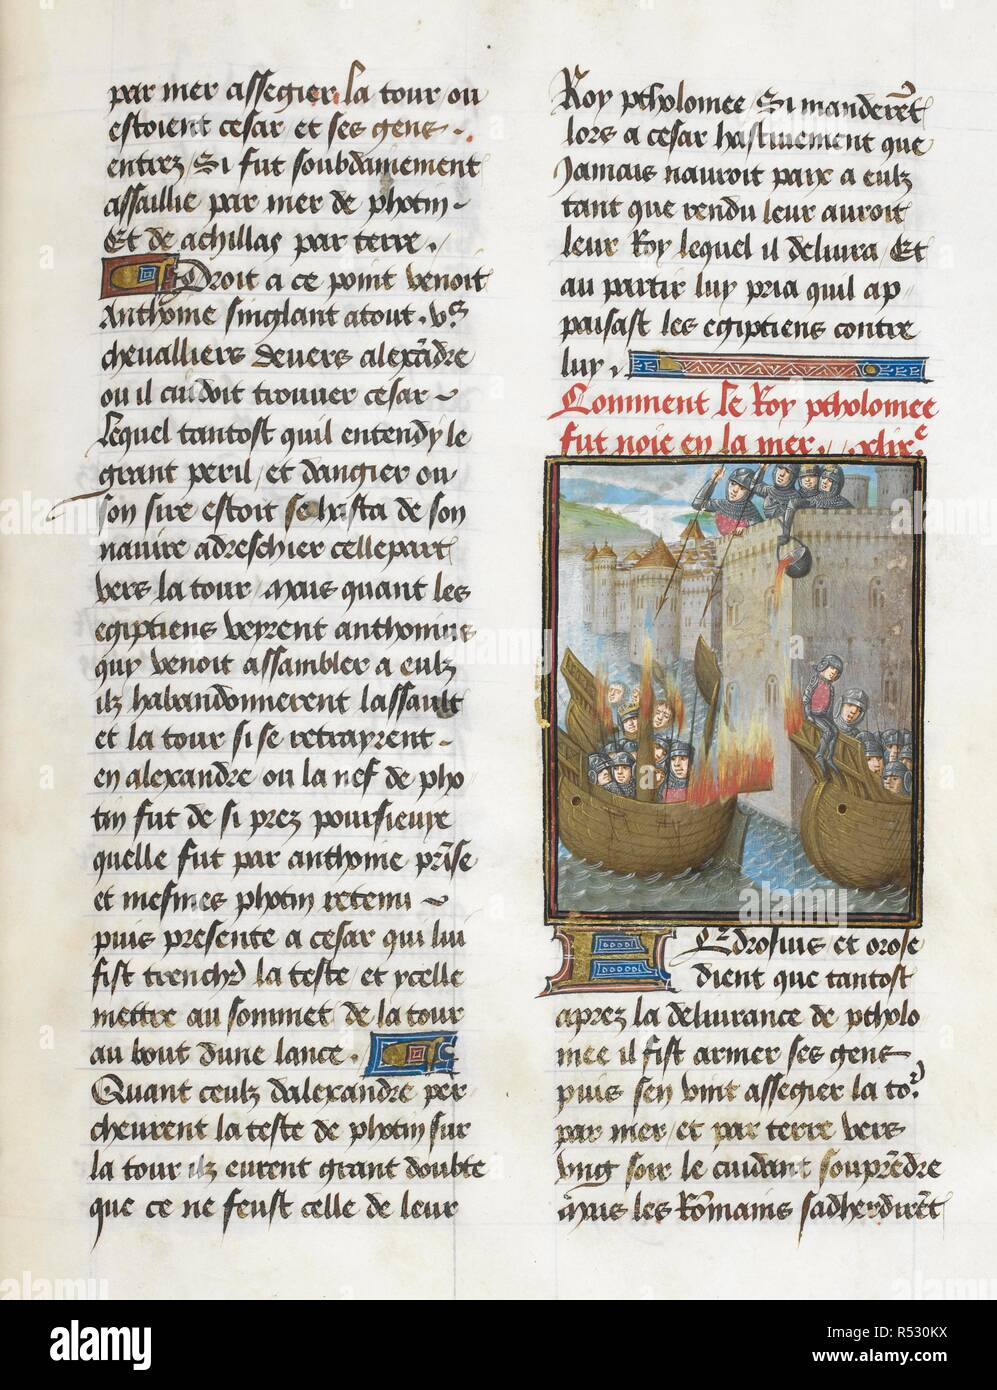 King Ptolemy's fleet atacking a city ((Book 10, 49). Caesar, translated by Jan Du Quesne (or Jean Duchesne), Bellum Gallicum ( Les commentaires de Cesar ). 1473-1476. Source: Royal 16 G.VIII, f.317v. Author: JULIUS CAESAR. Du Quesne, Jehan. Circle of the Master of the London Wavrin. - Stock Image